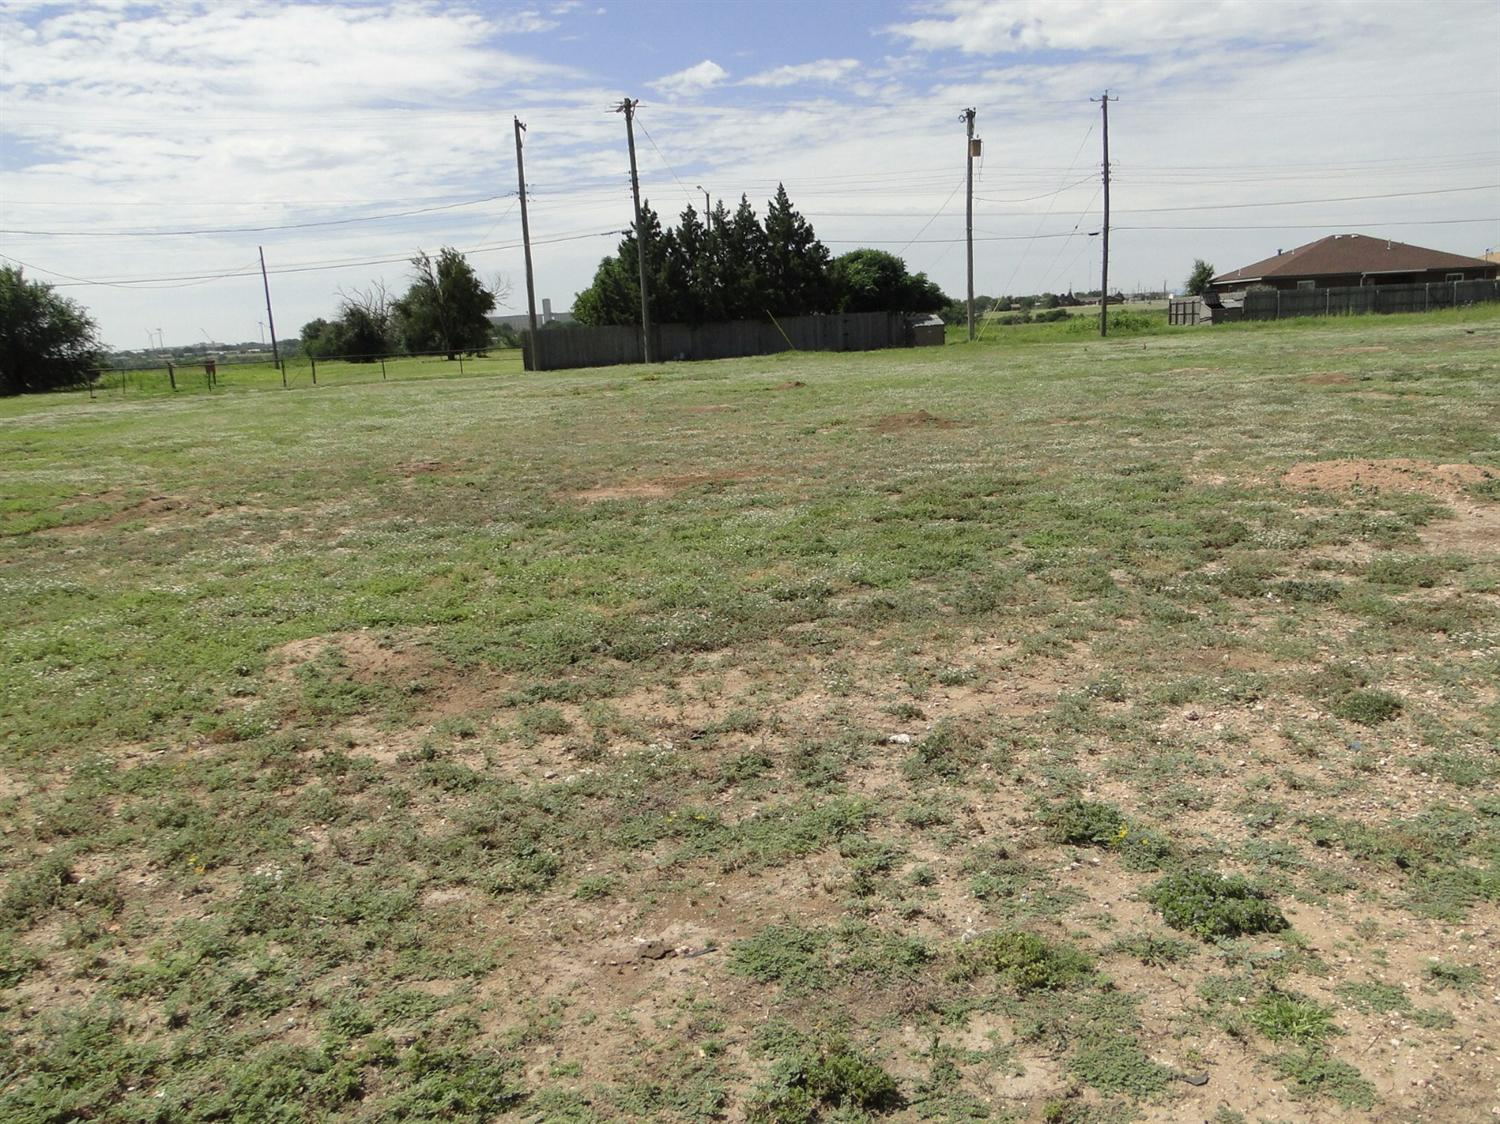 Lot is approximately 50x150. 15 feet on corner is right of way belonging to the City of Lubbock